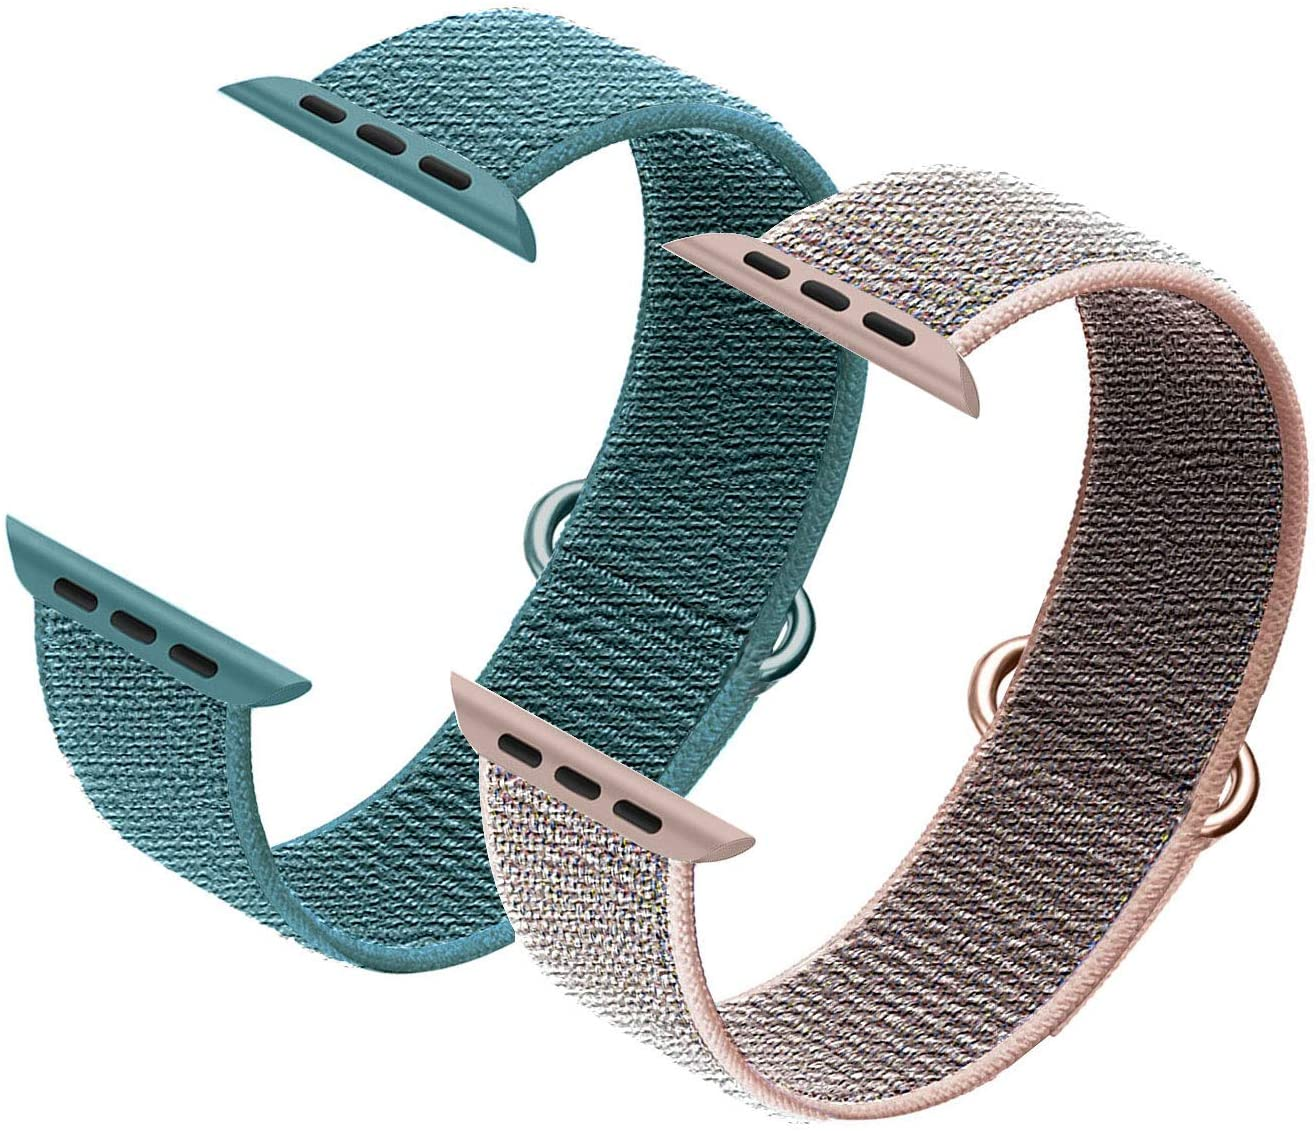 Ycysh 2 Pack Strap Compatible with Apple Watch Band 38mm 40mm 42mm 44mm,Replacement Bands for iWatch Series 6/5/4/3/2/1/SE